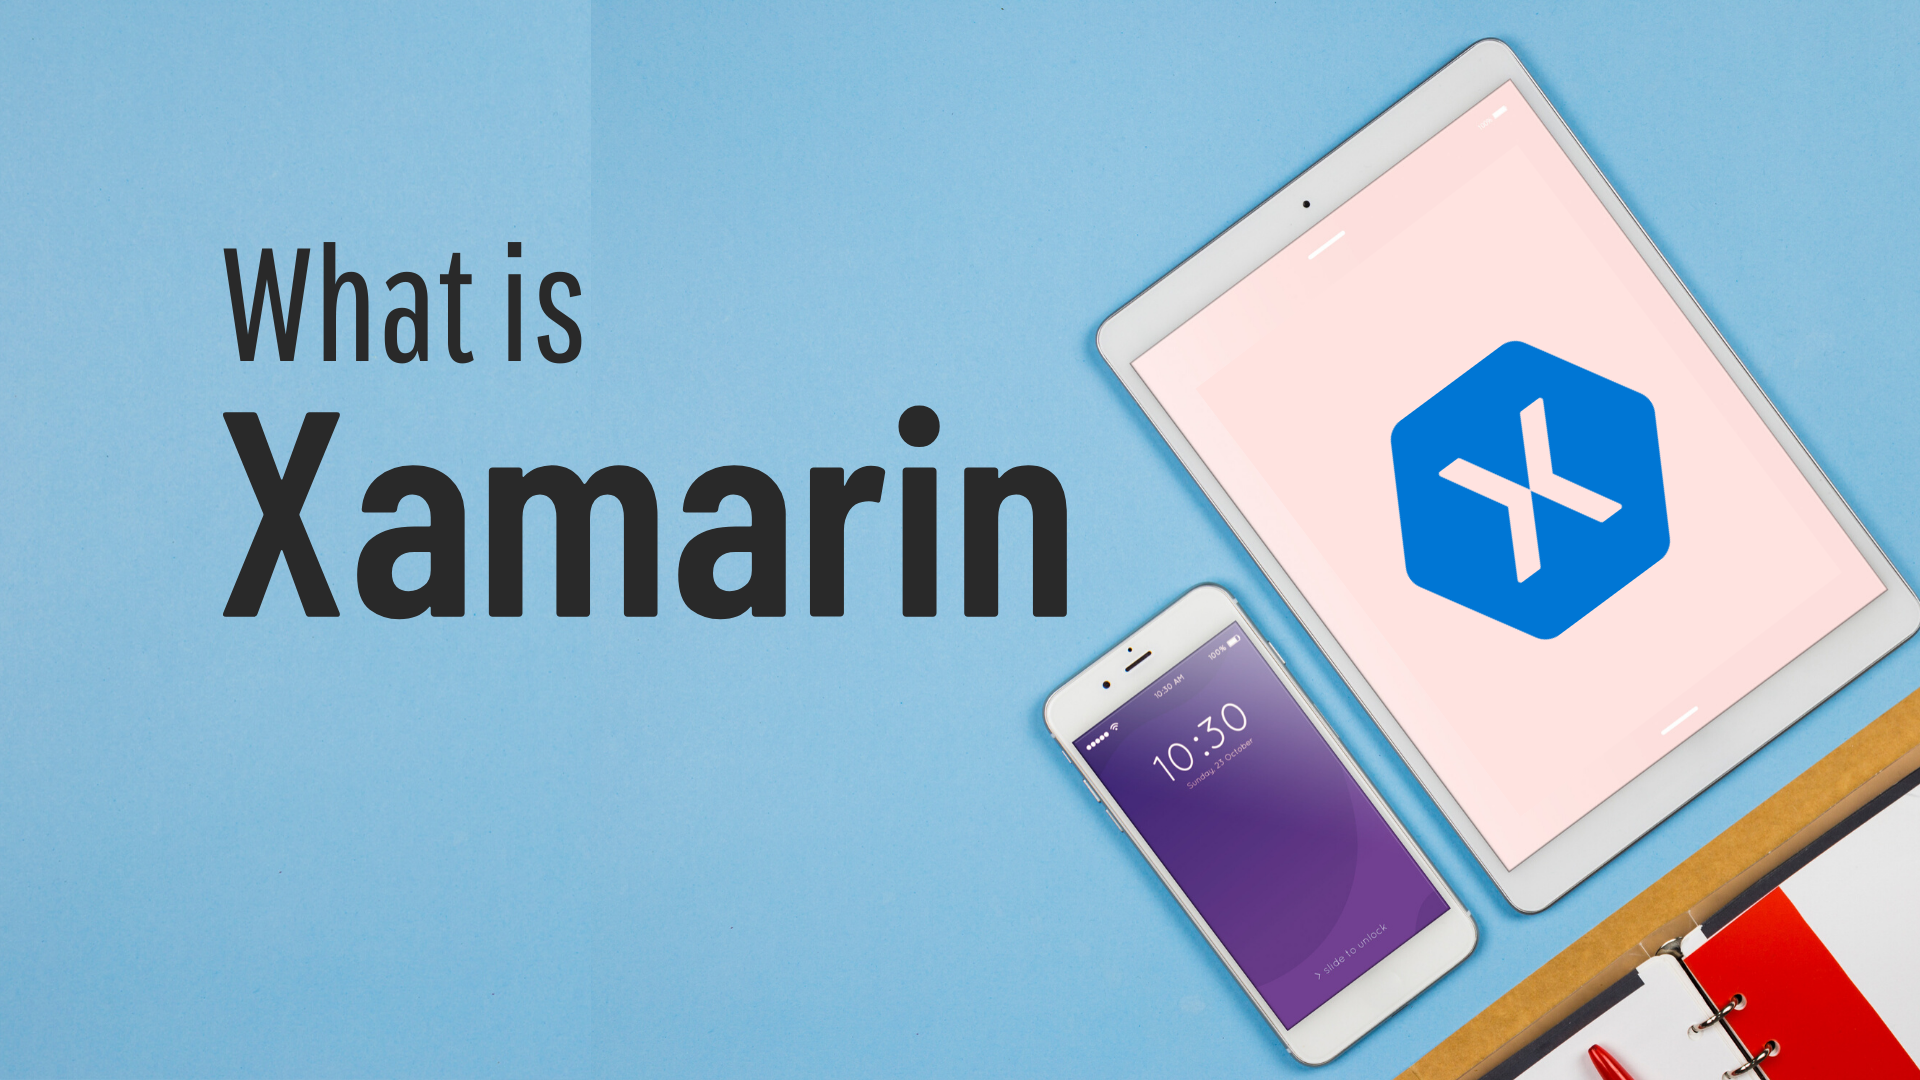 What is Xamarin?